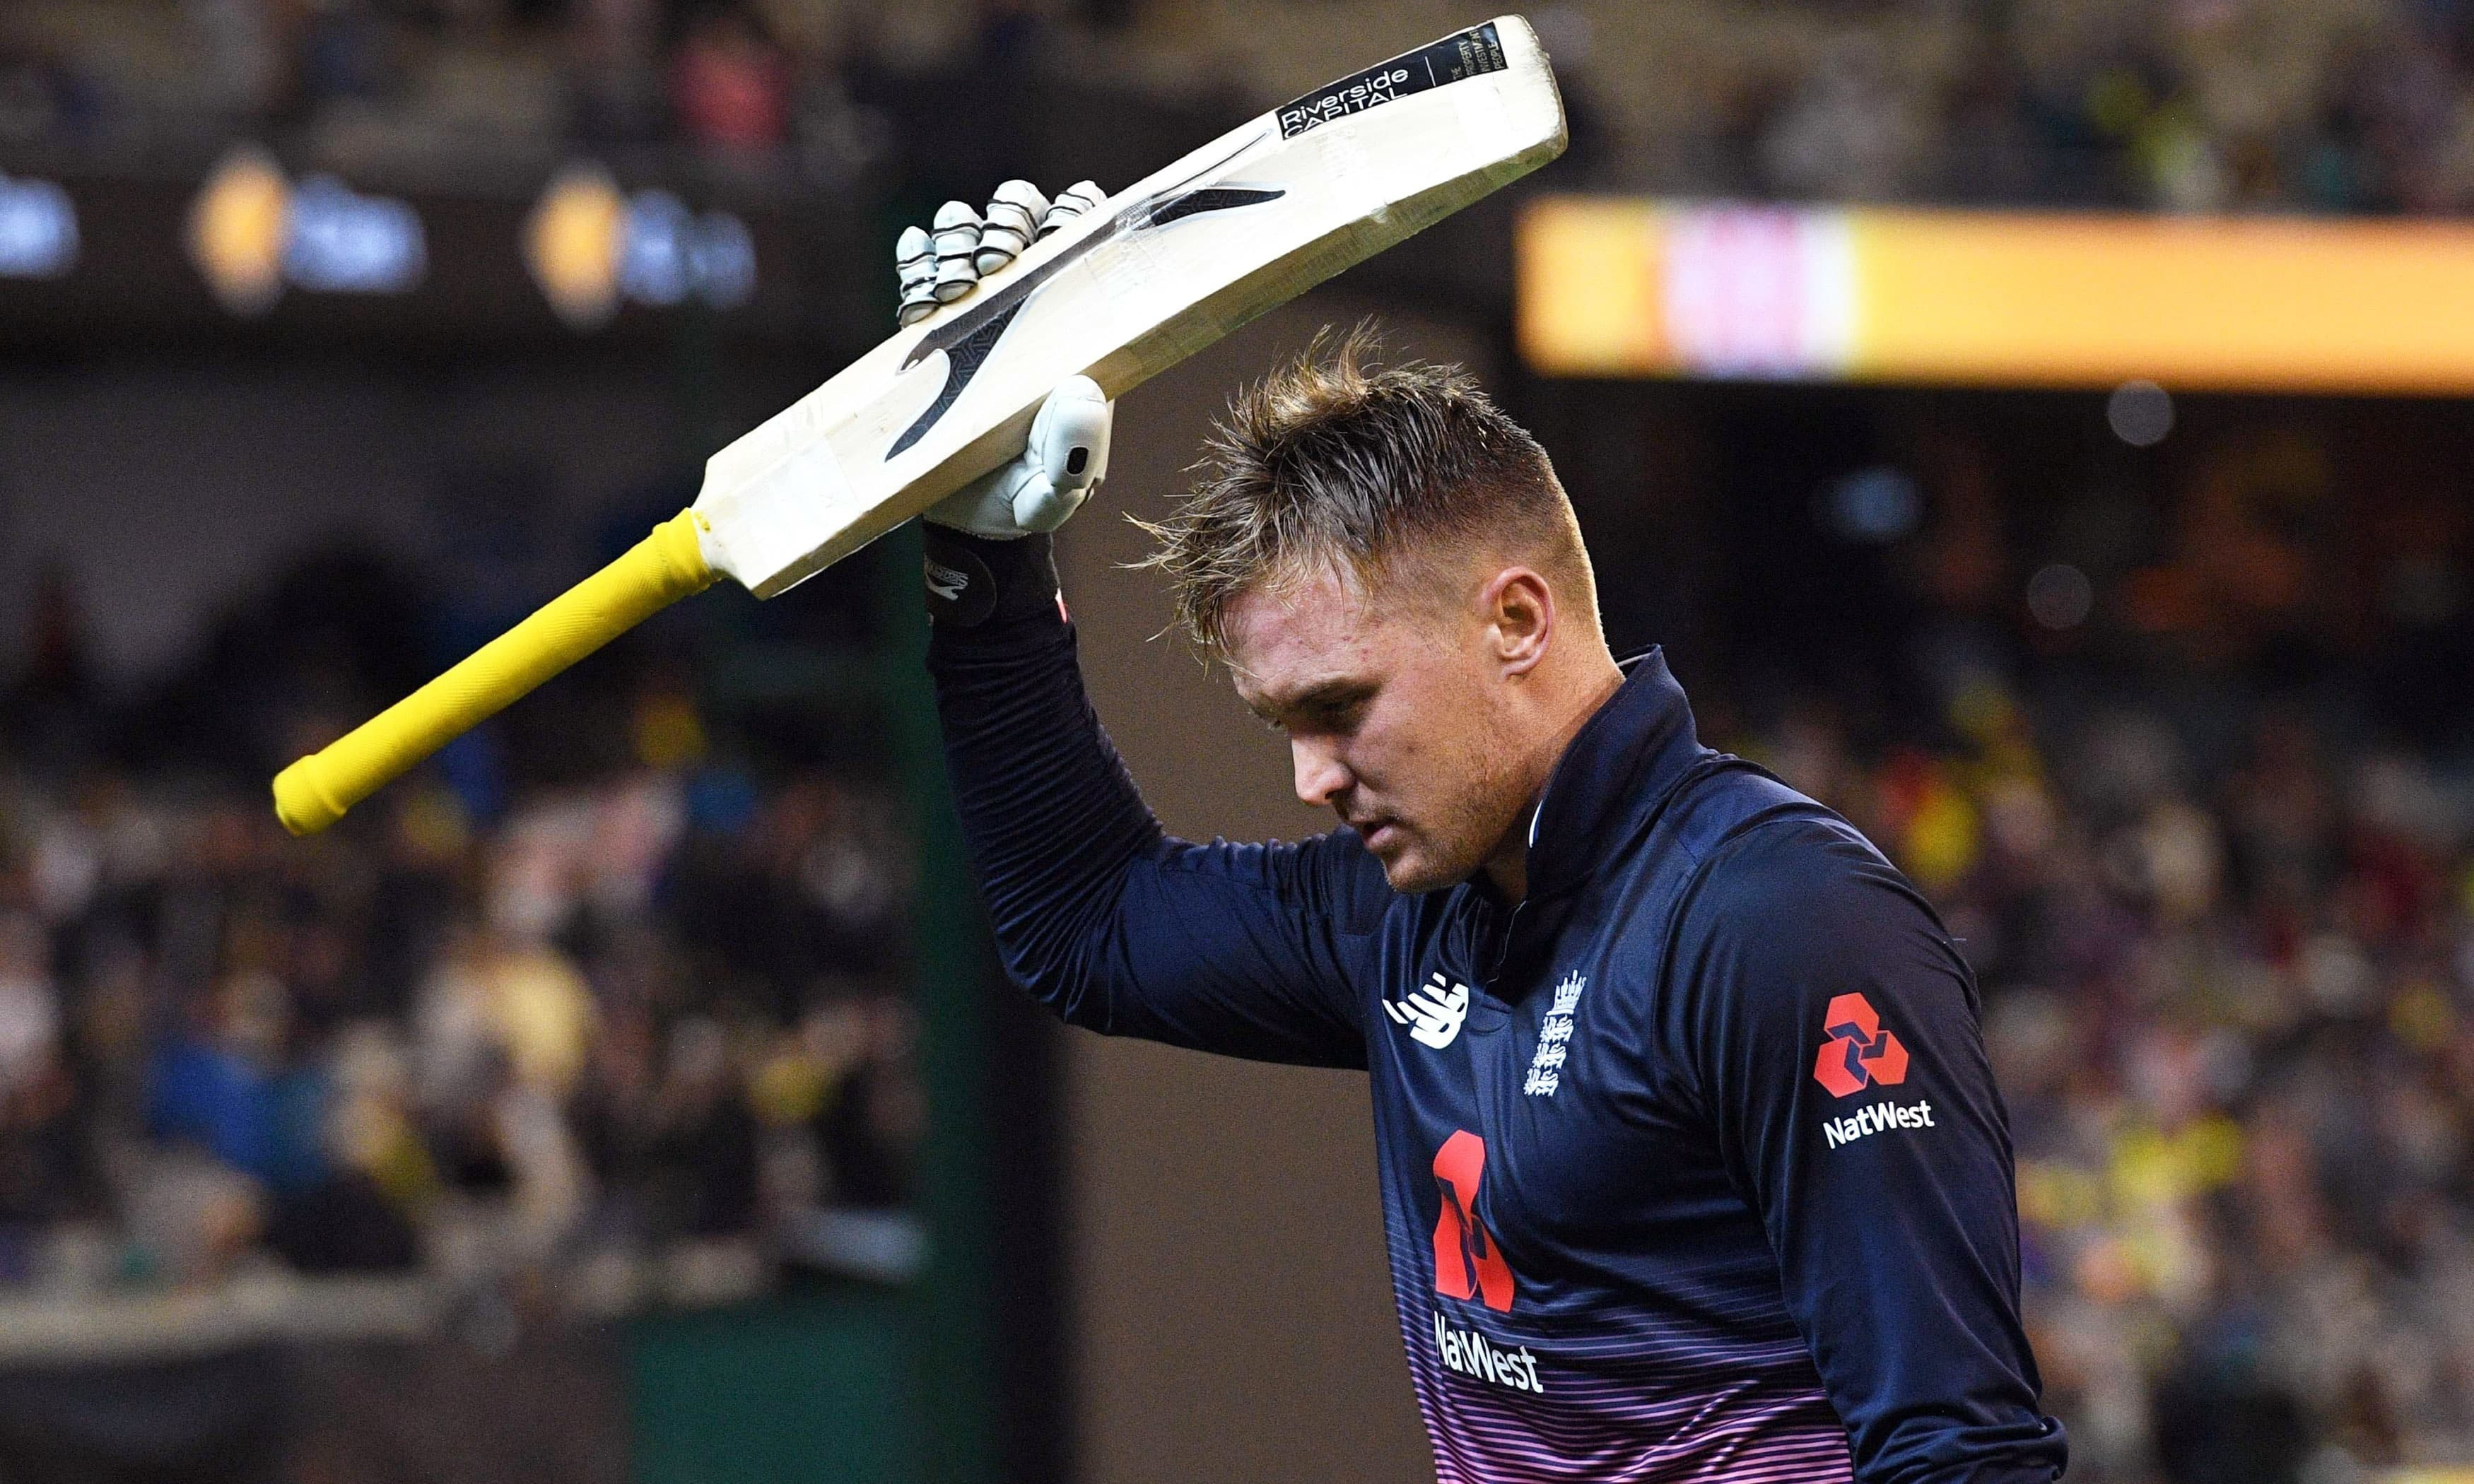 England batsman Jason Roy acknowledges the applause after being dismissed by Australia's for 180 during their one-day international cricket match played at the MCG in Melbourne on January 14, 2018. / AFP PHOTO / WILLIAM WEST / -- IMAGE RESTRICTED TO EDITORIAL USE - STRICTLY NO COMMERCIAL USE -- — AFP or licensors